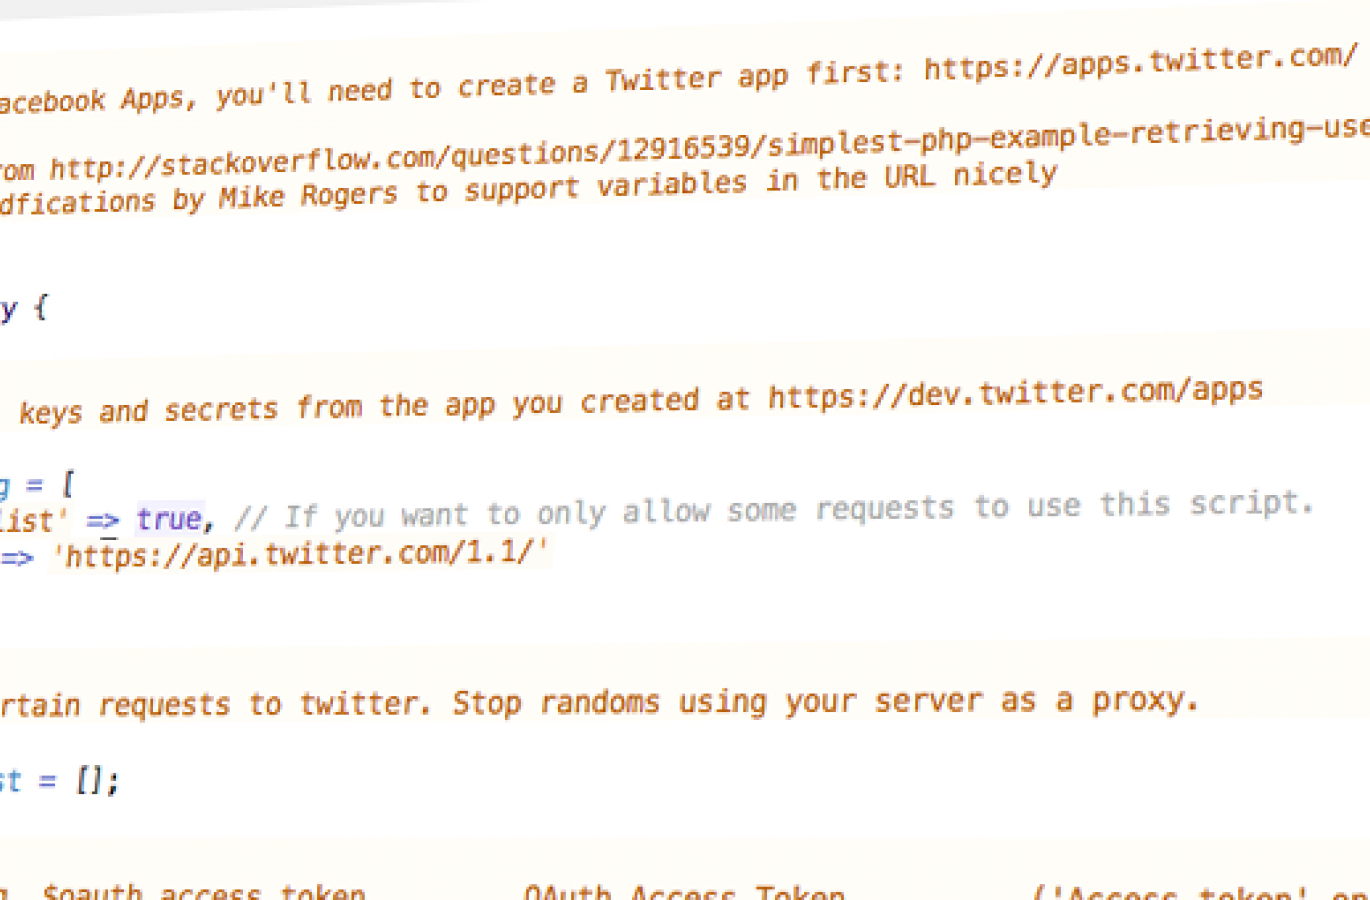 Tutorial - Retrieving tweets from the Twitter v1 1 API using